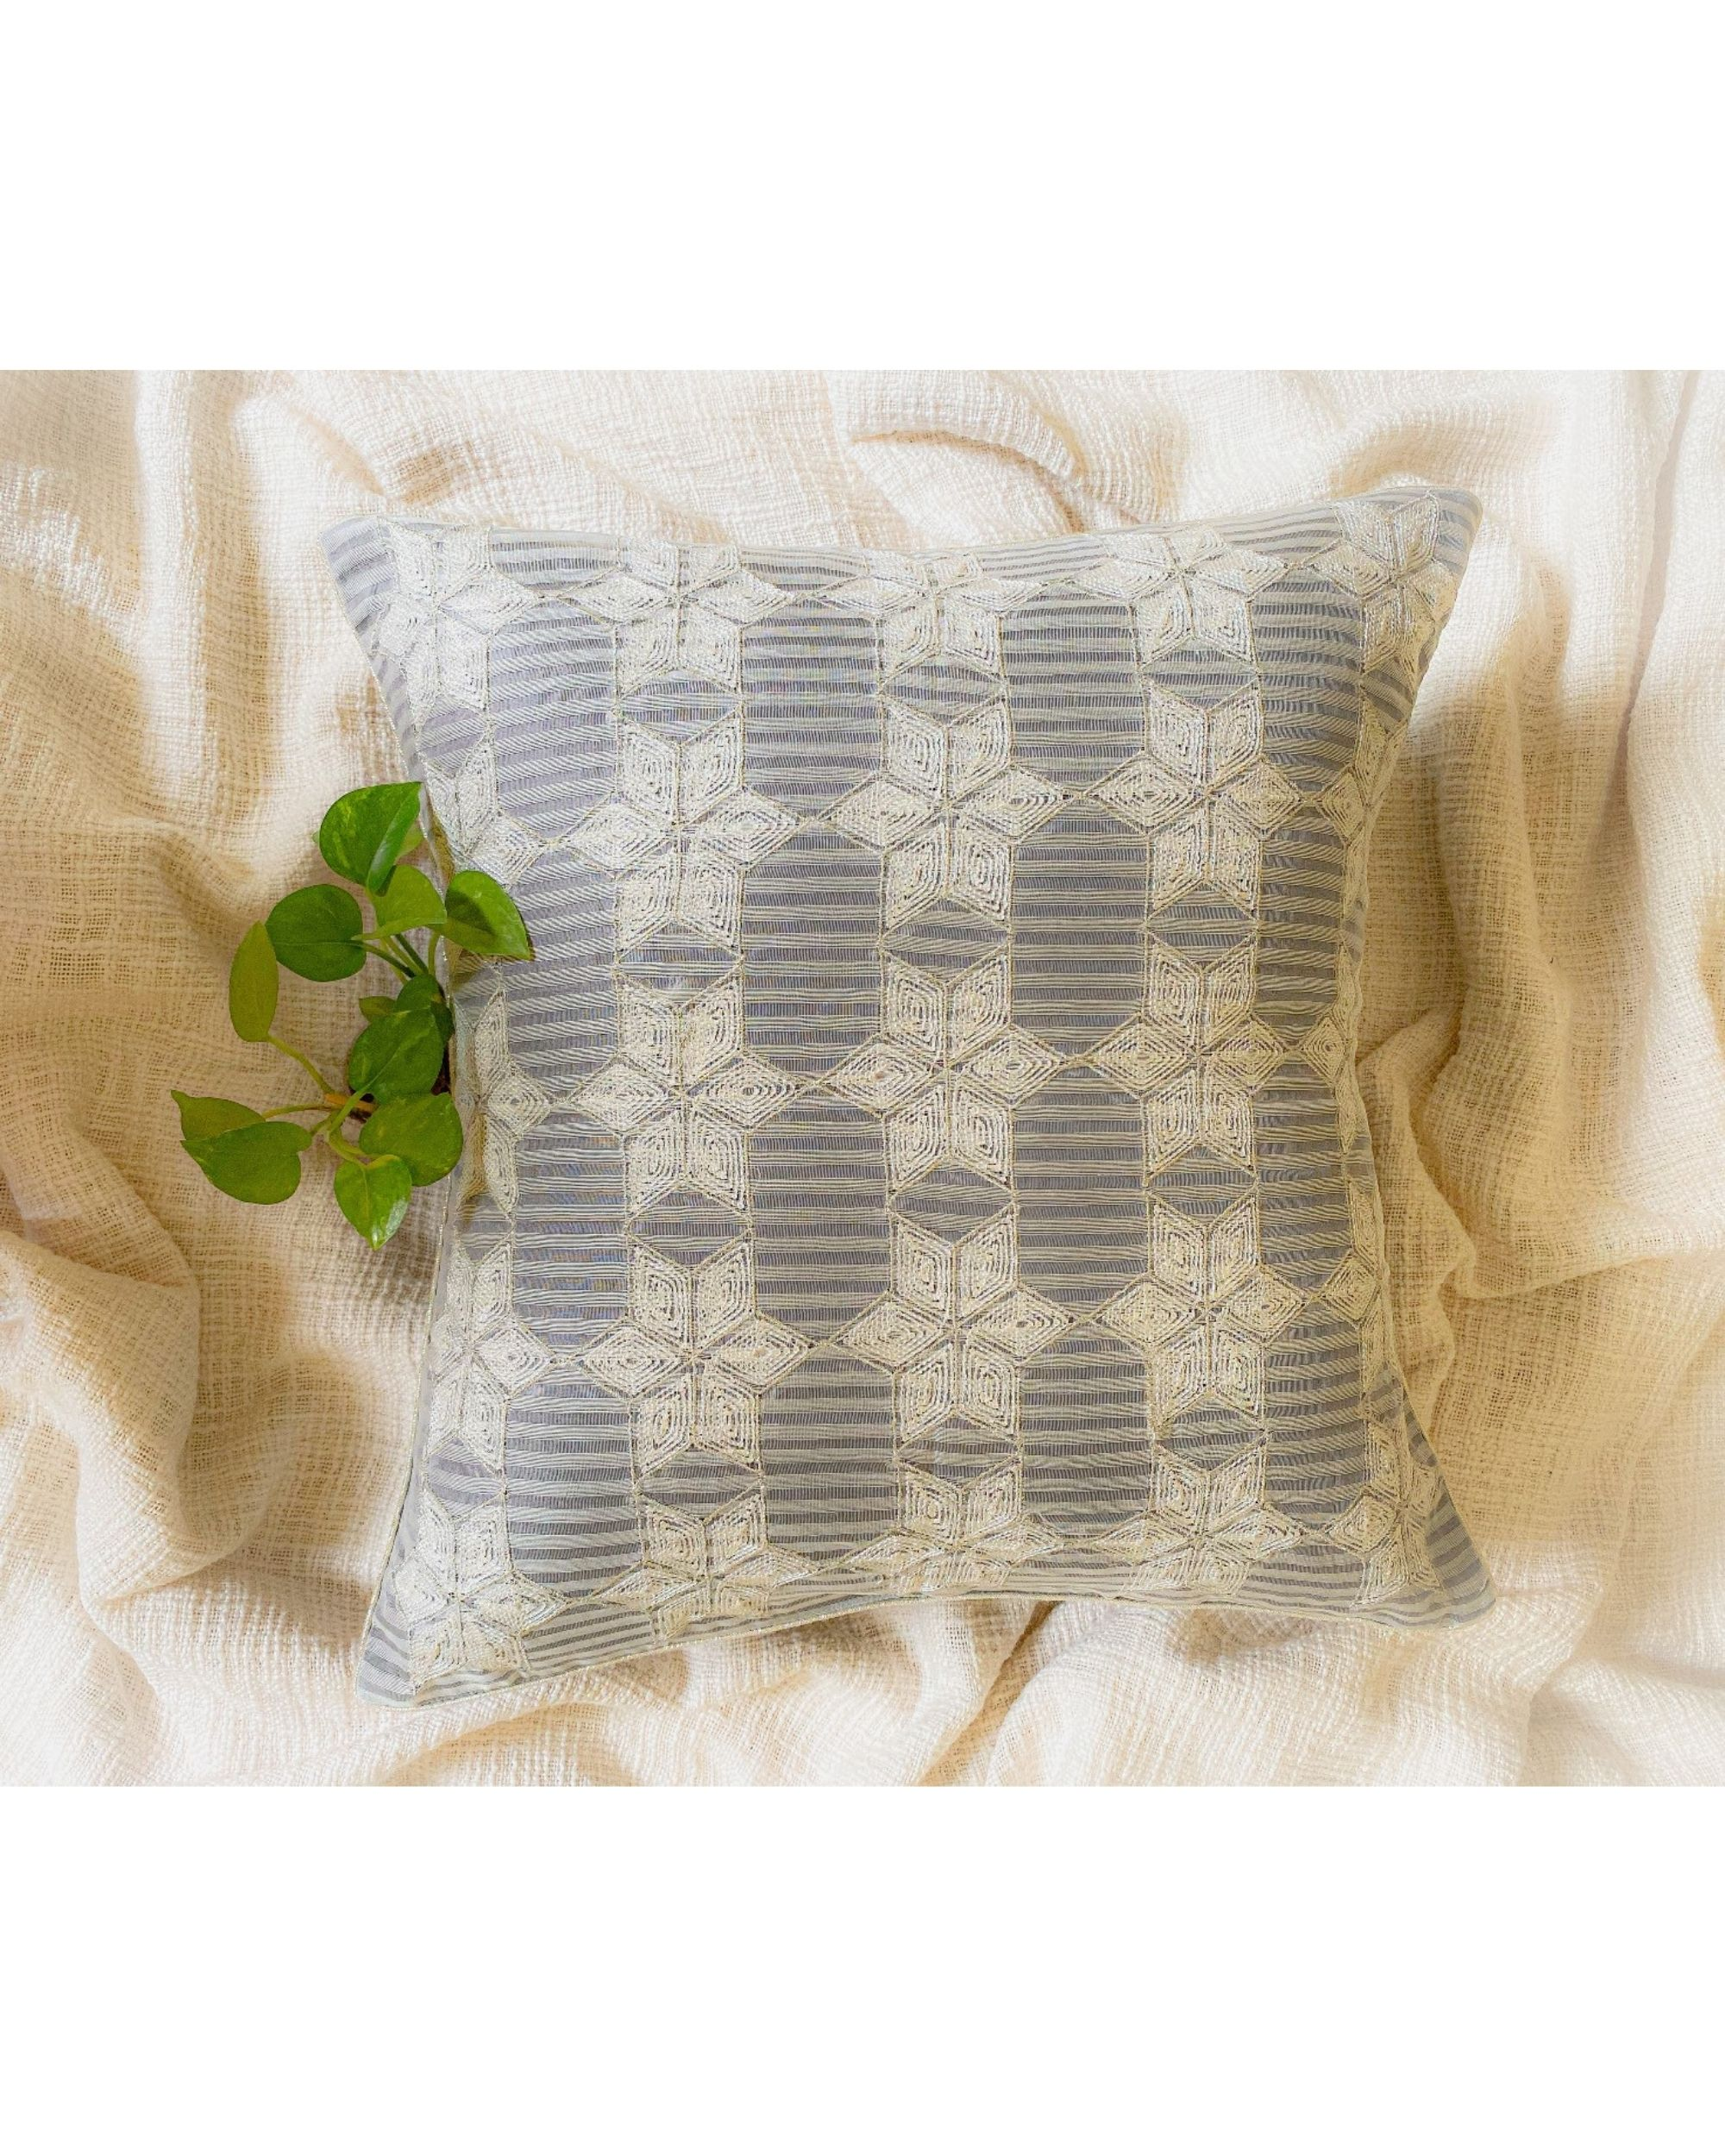 Light grey and white embroidered cushion cover